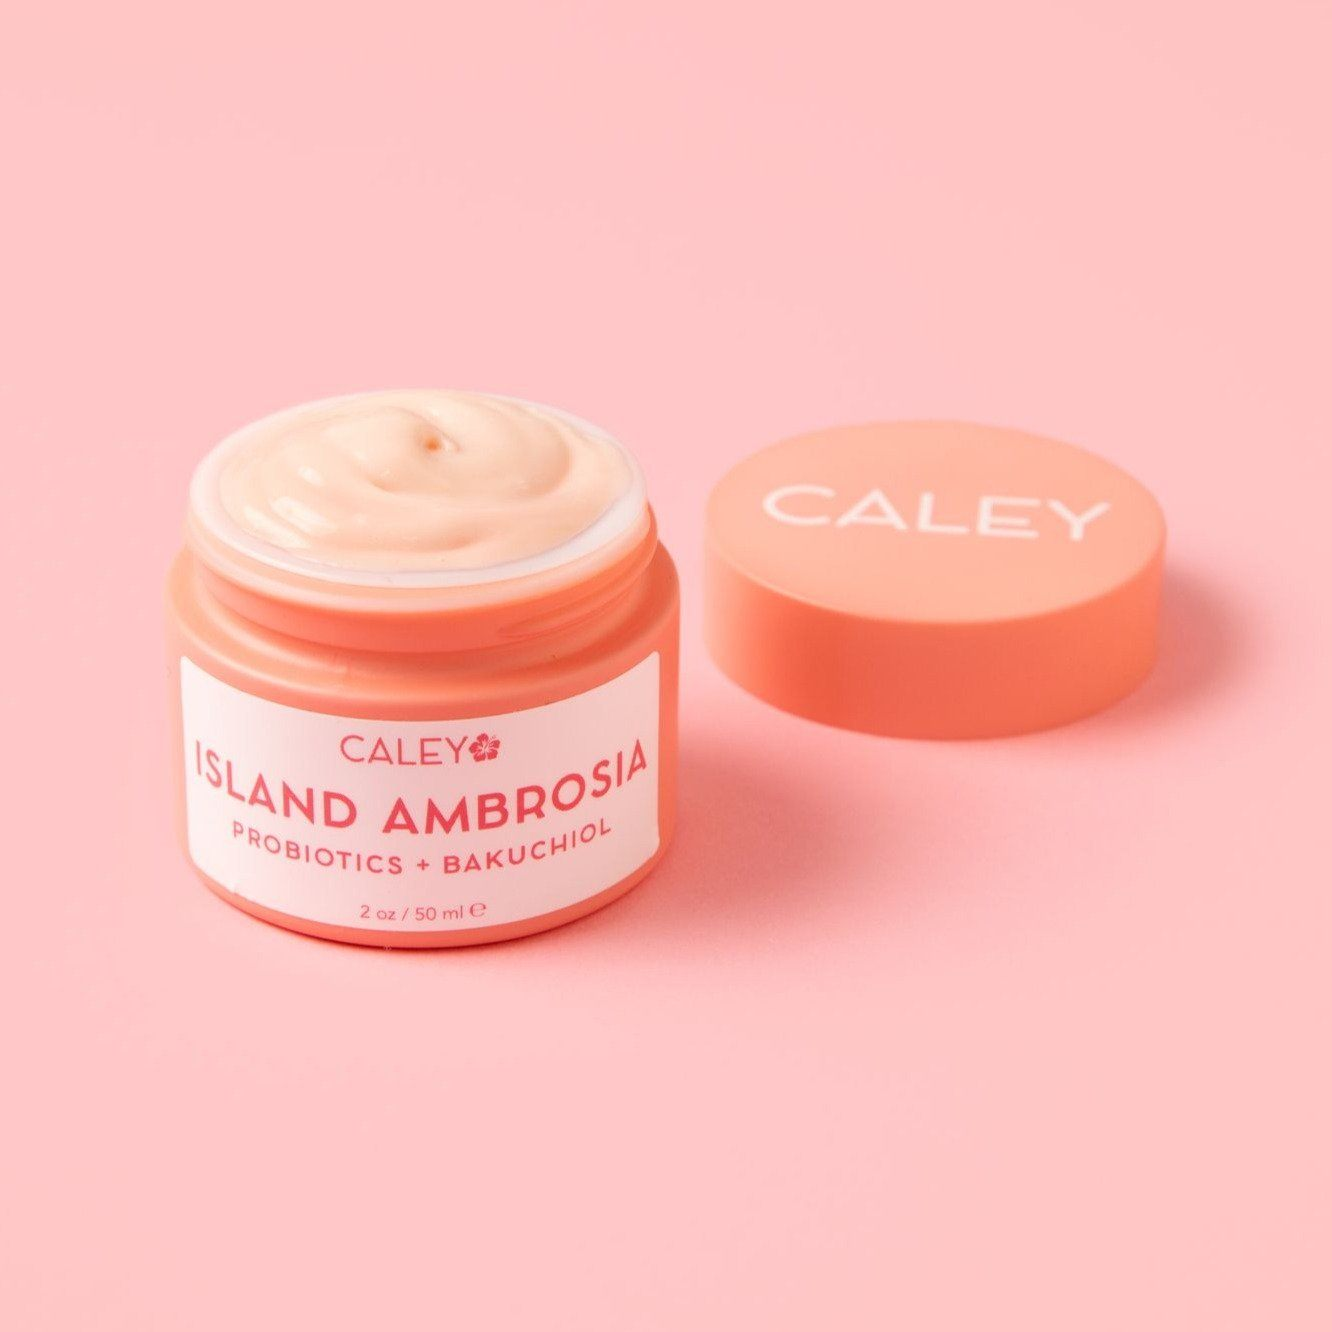 Island Ambrosia Face Caley